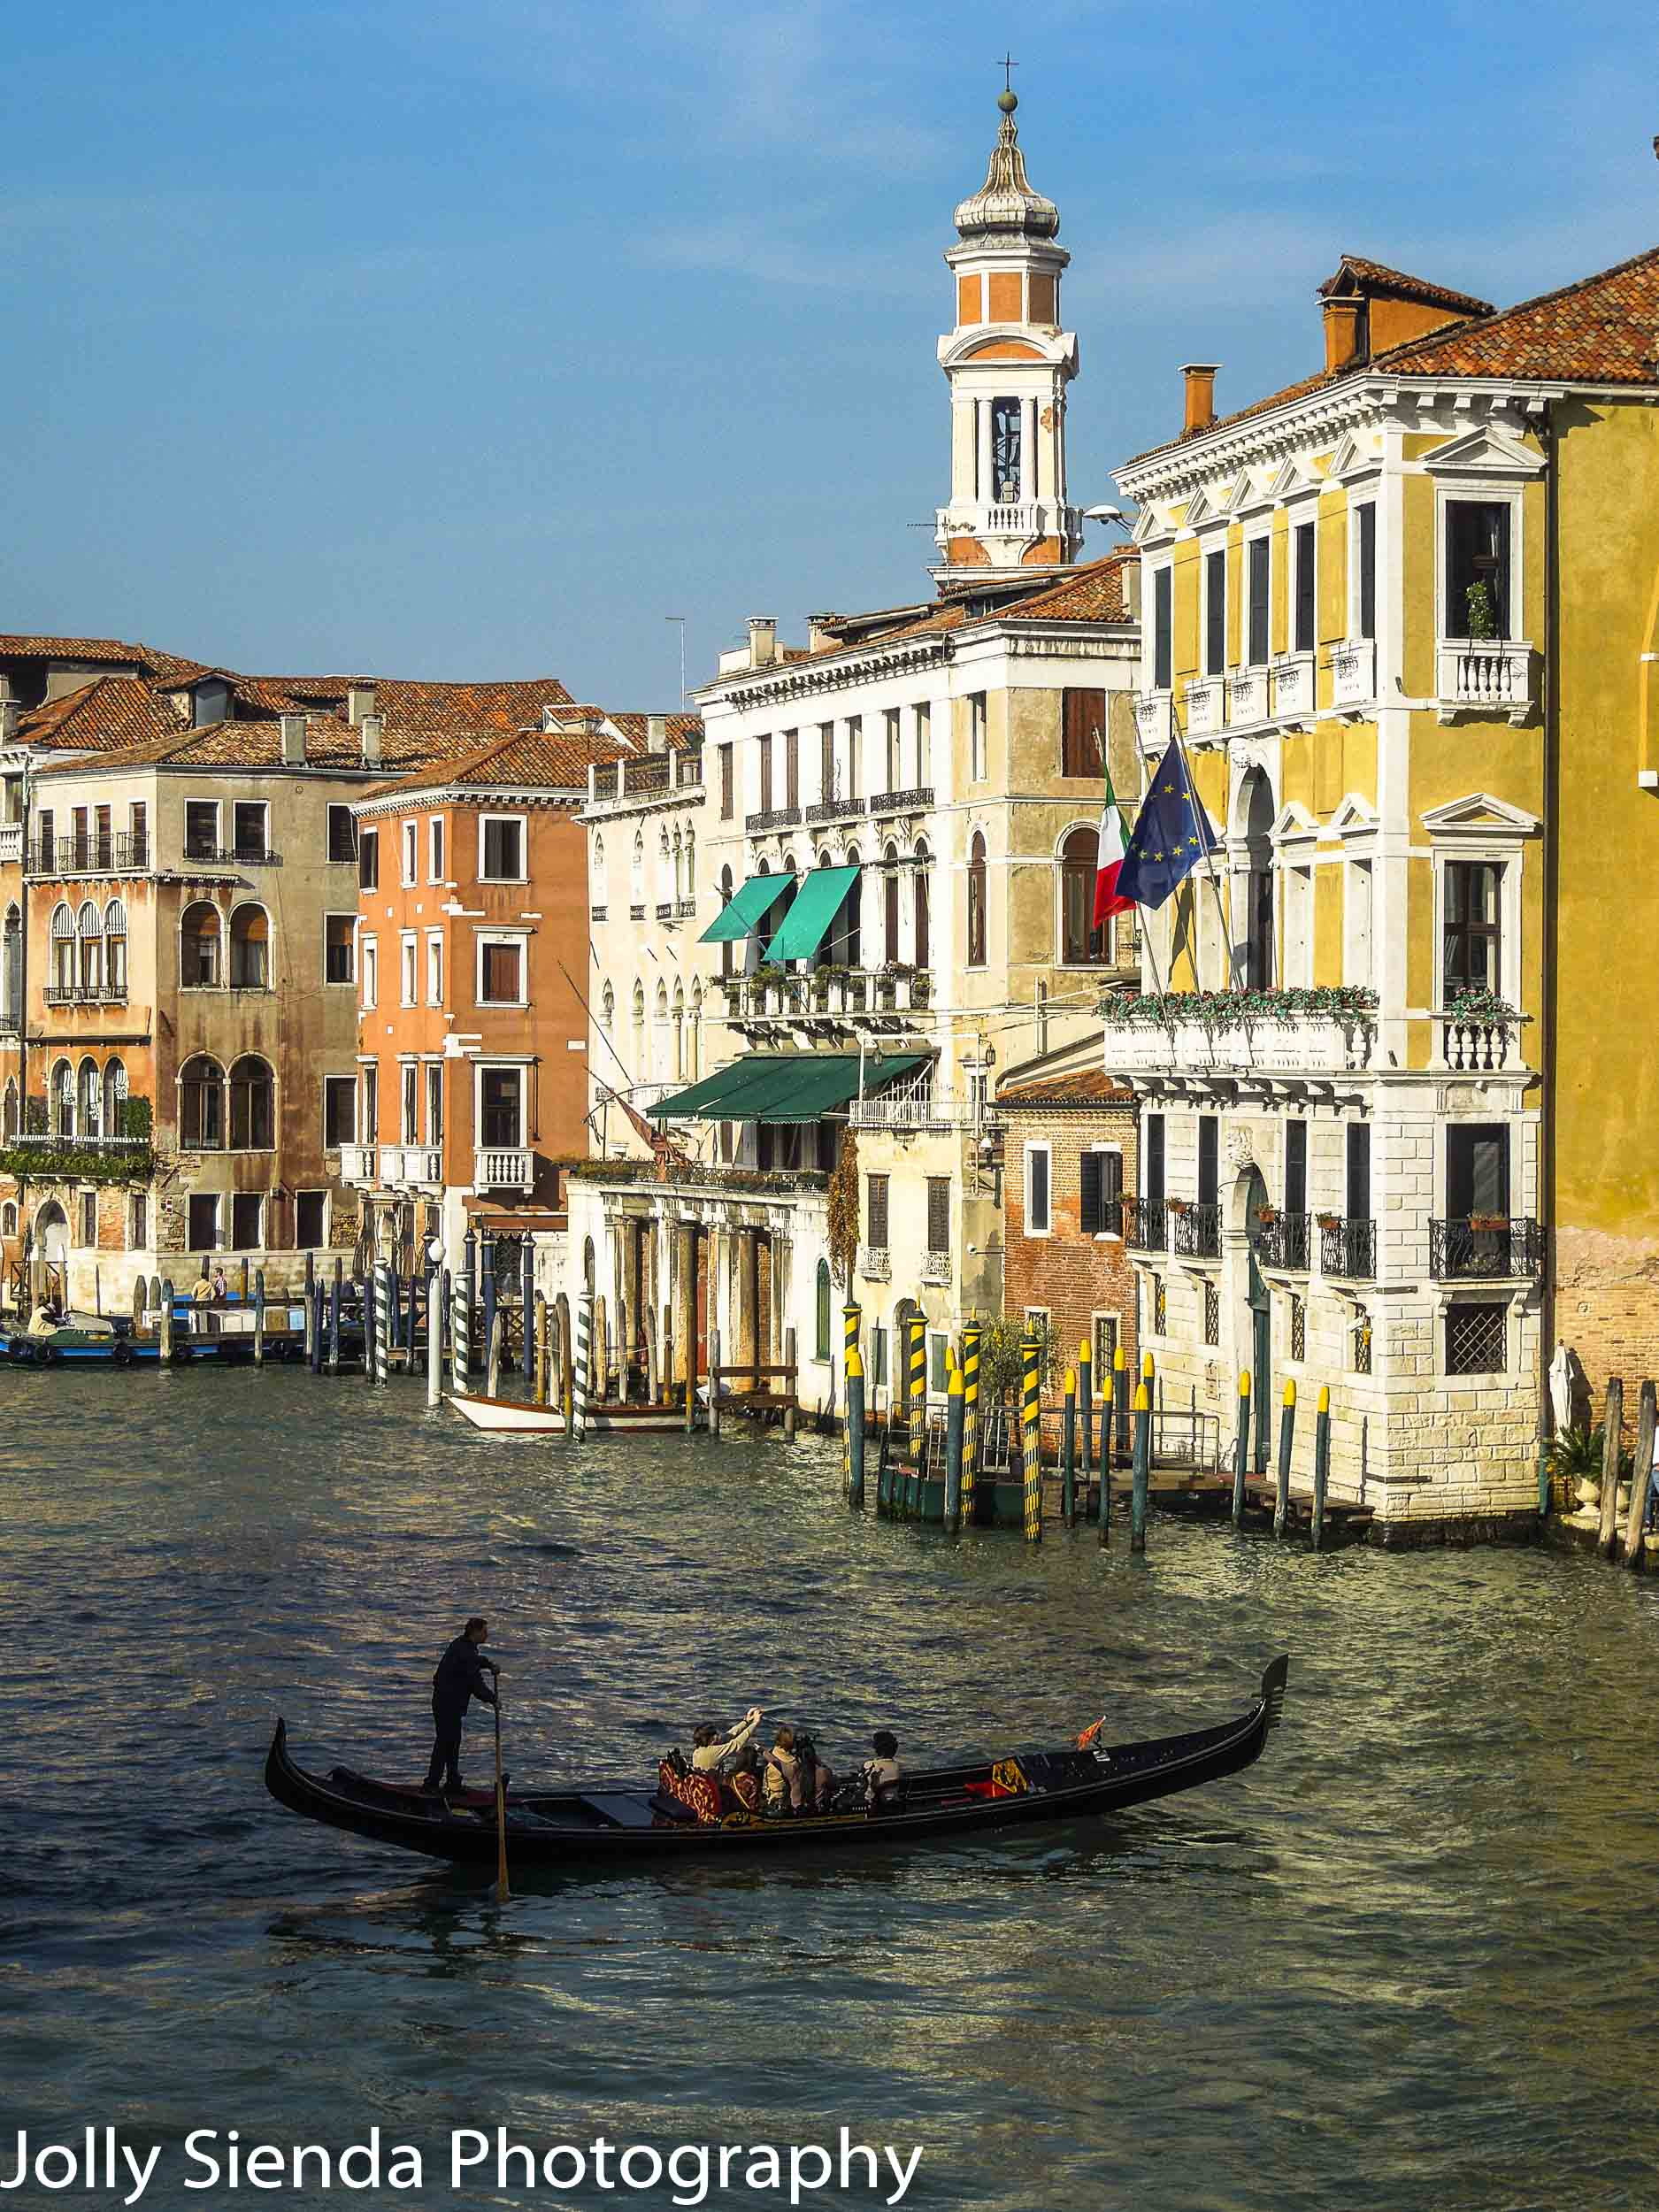 Gondolier uses his paddle to steer the gondola with tourists thr